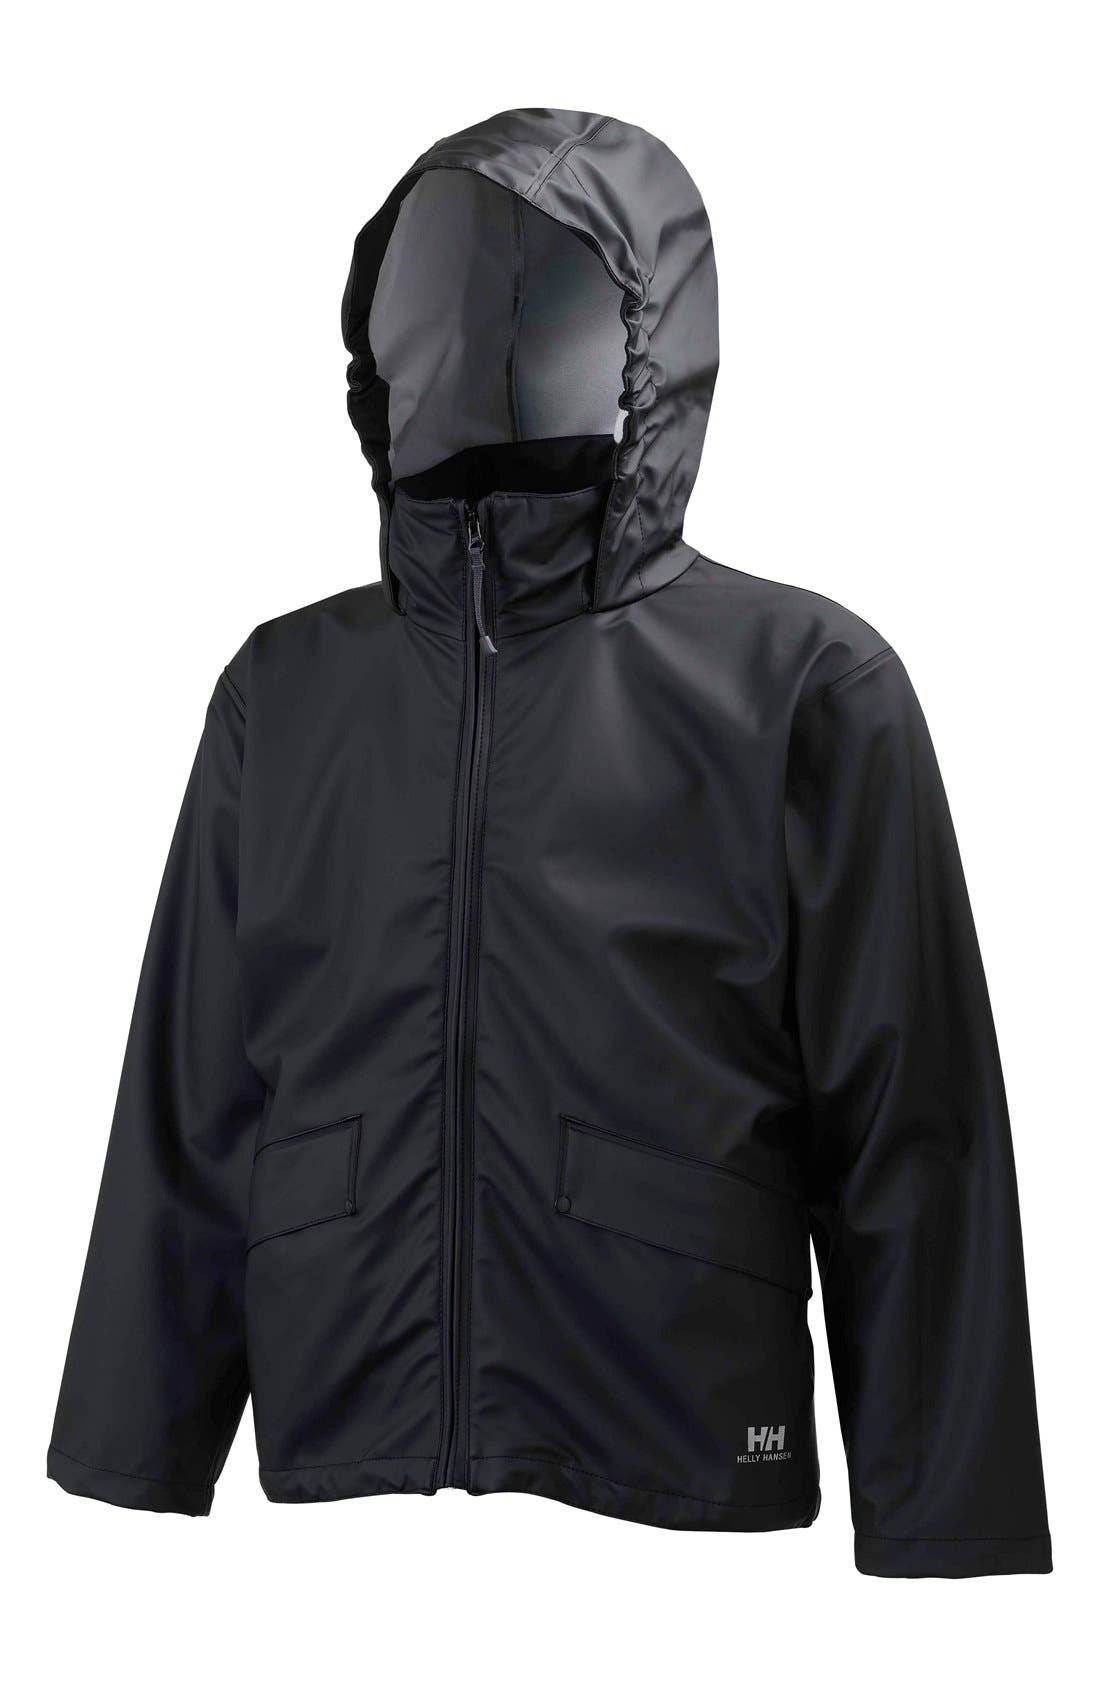 Jr. Voss Waterproof Rain Jacket,                             Main thumbnail 1, color,                             009